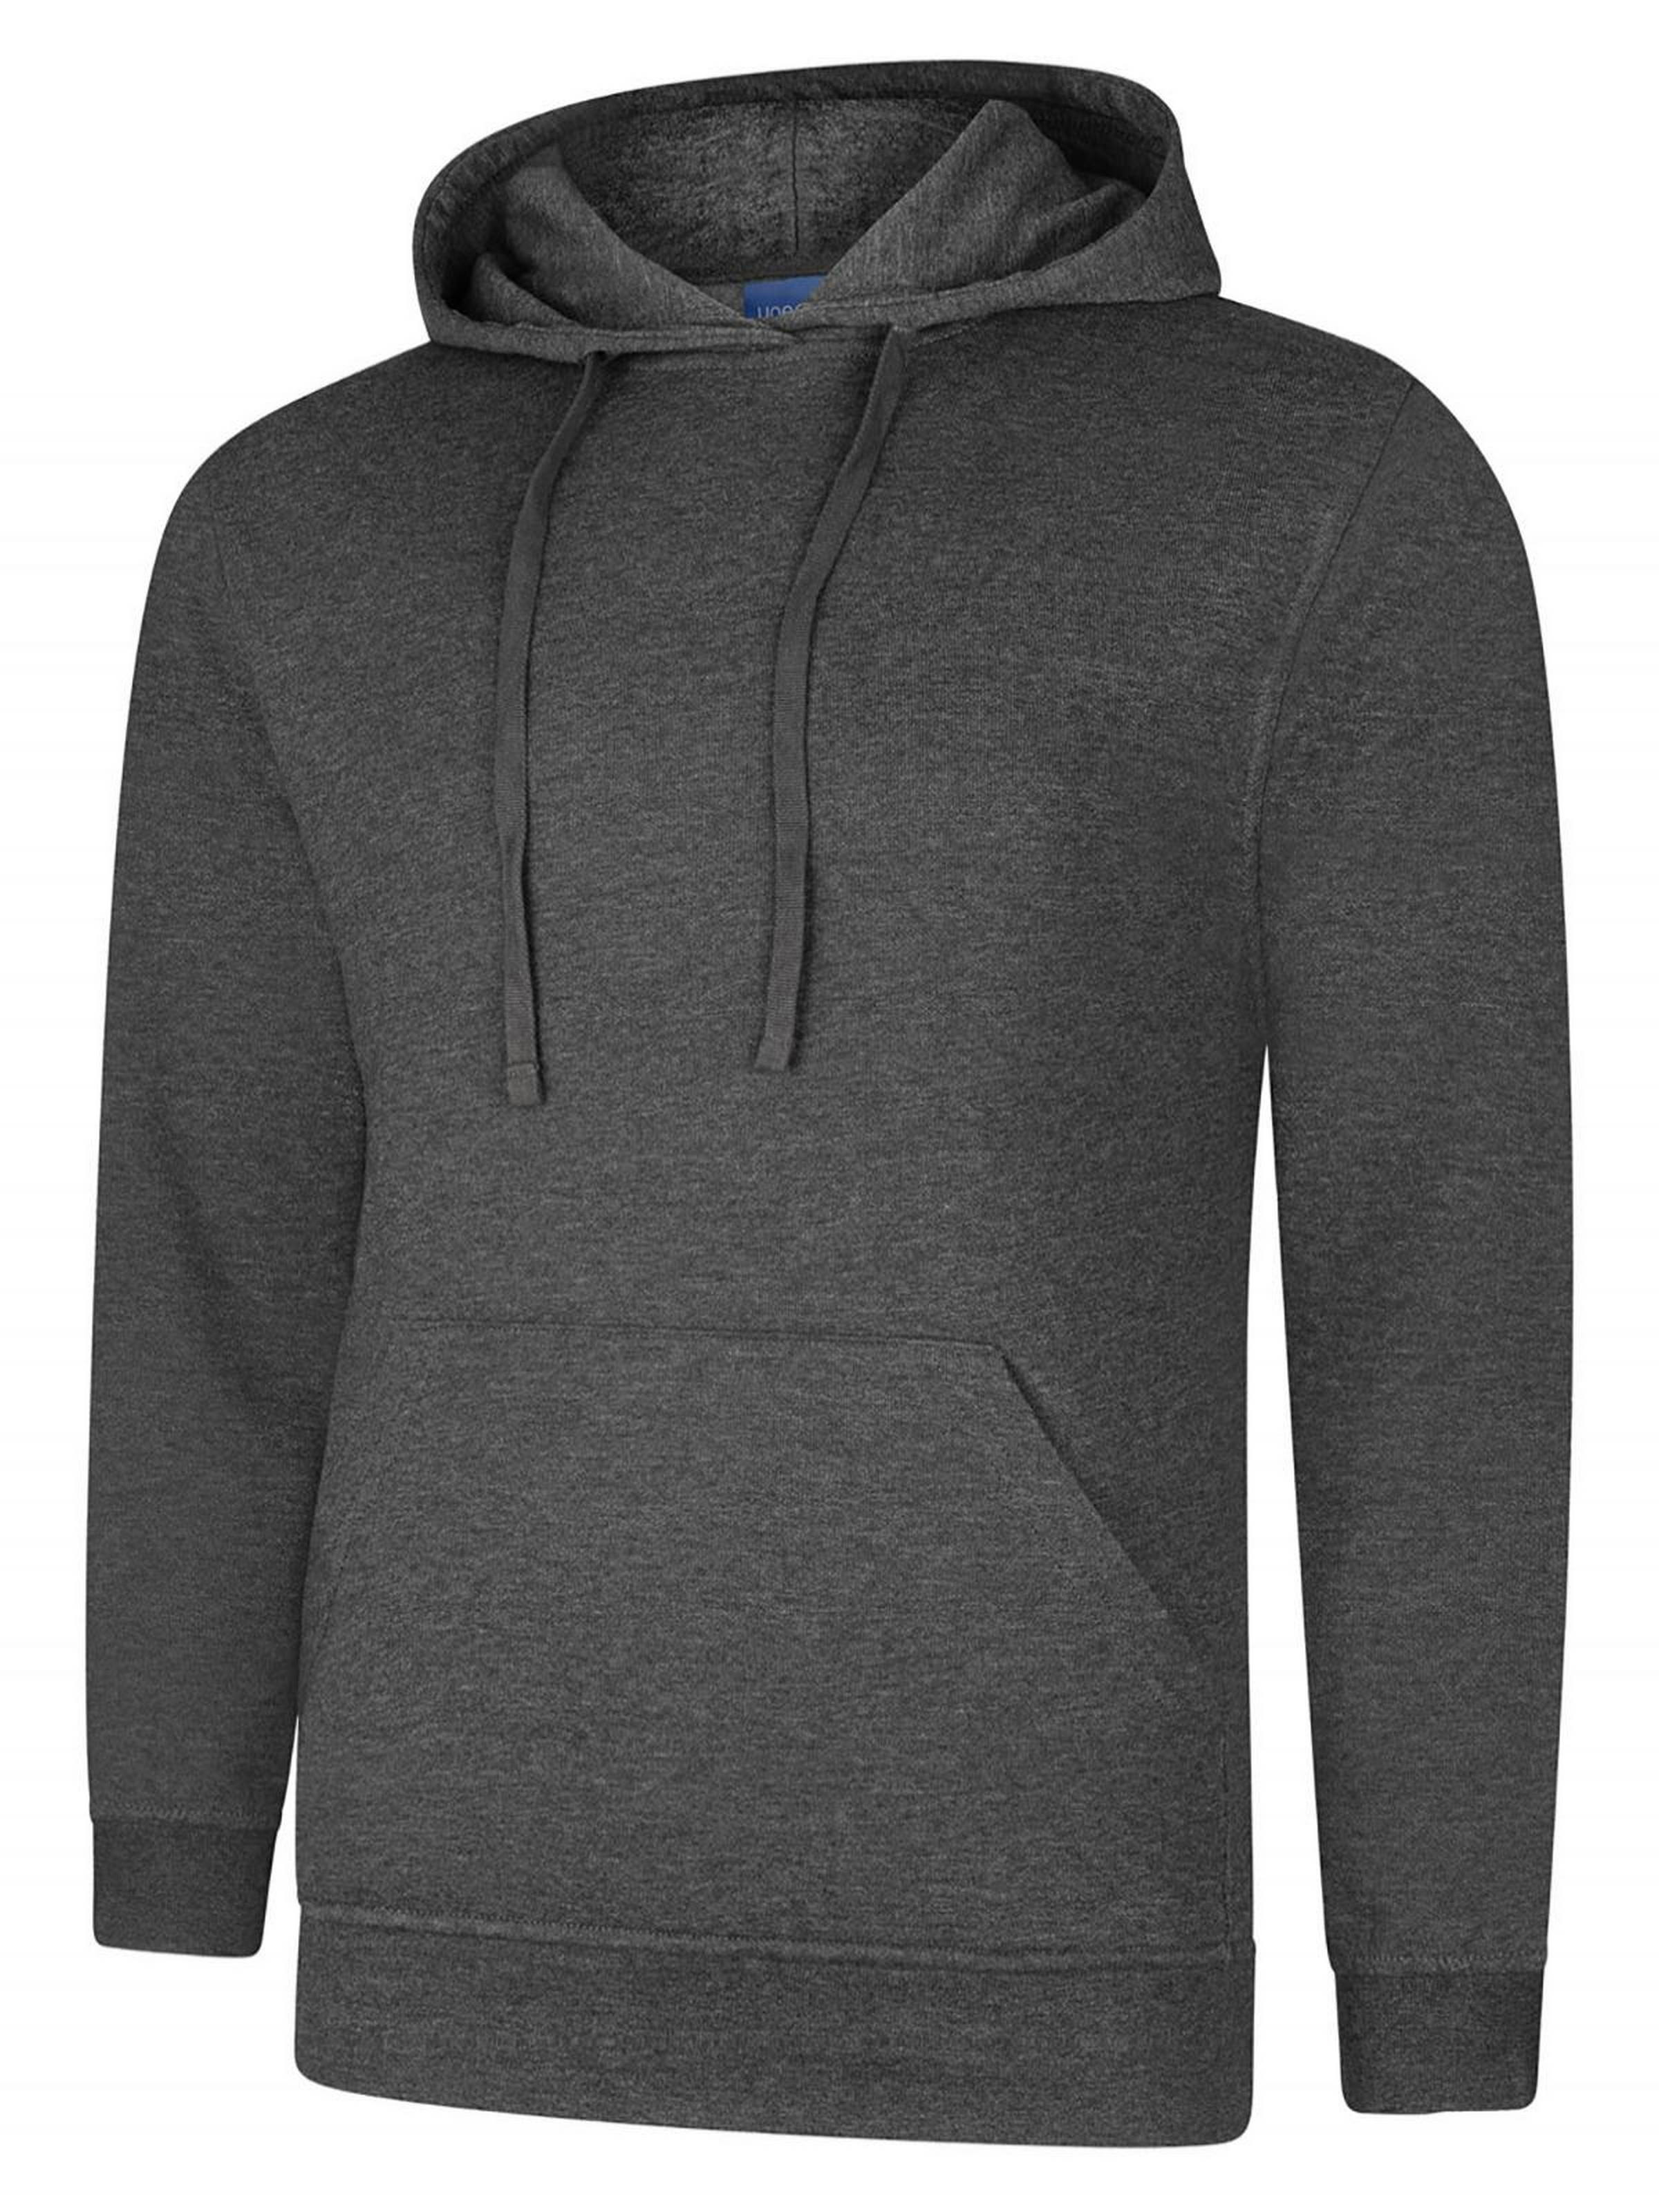 509 Deluxe Hooded Sweatshirt